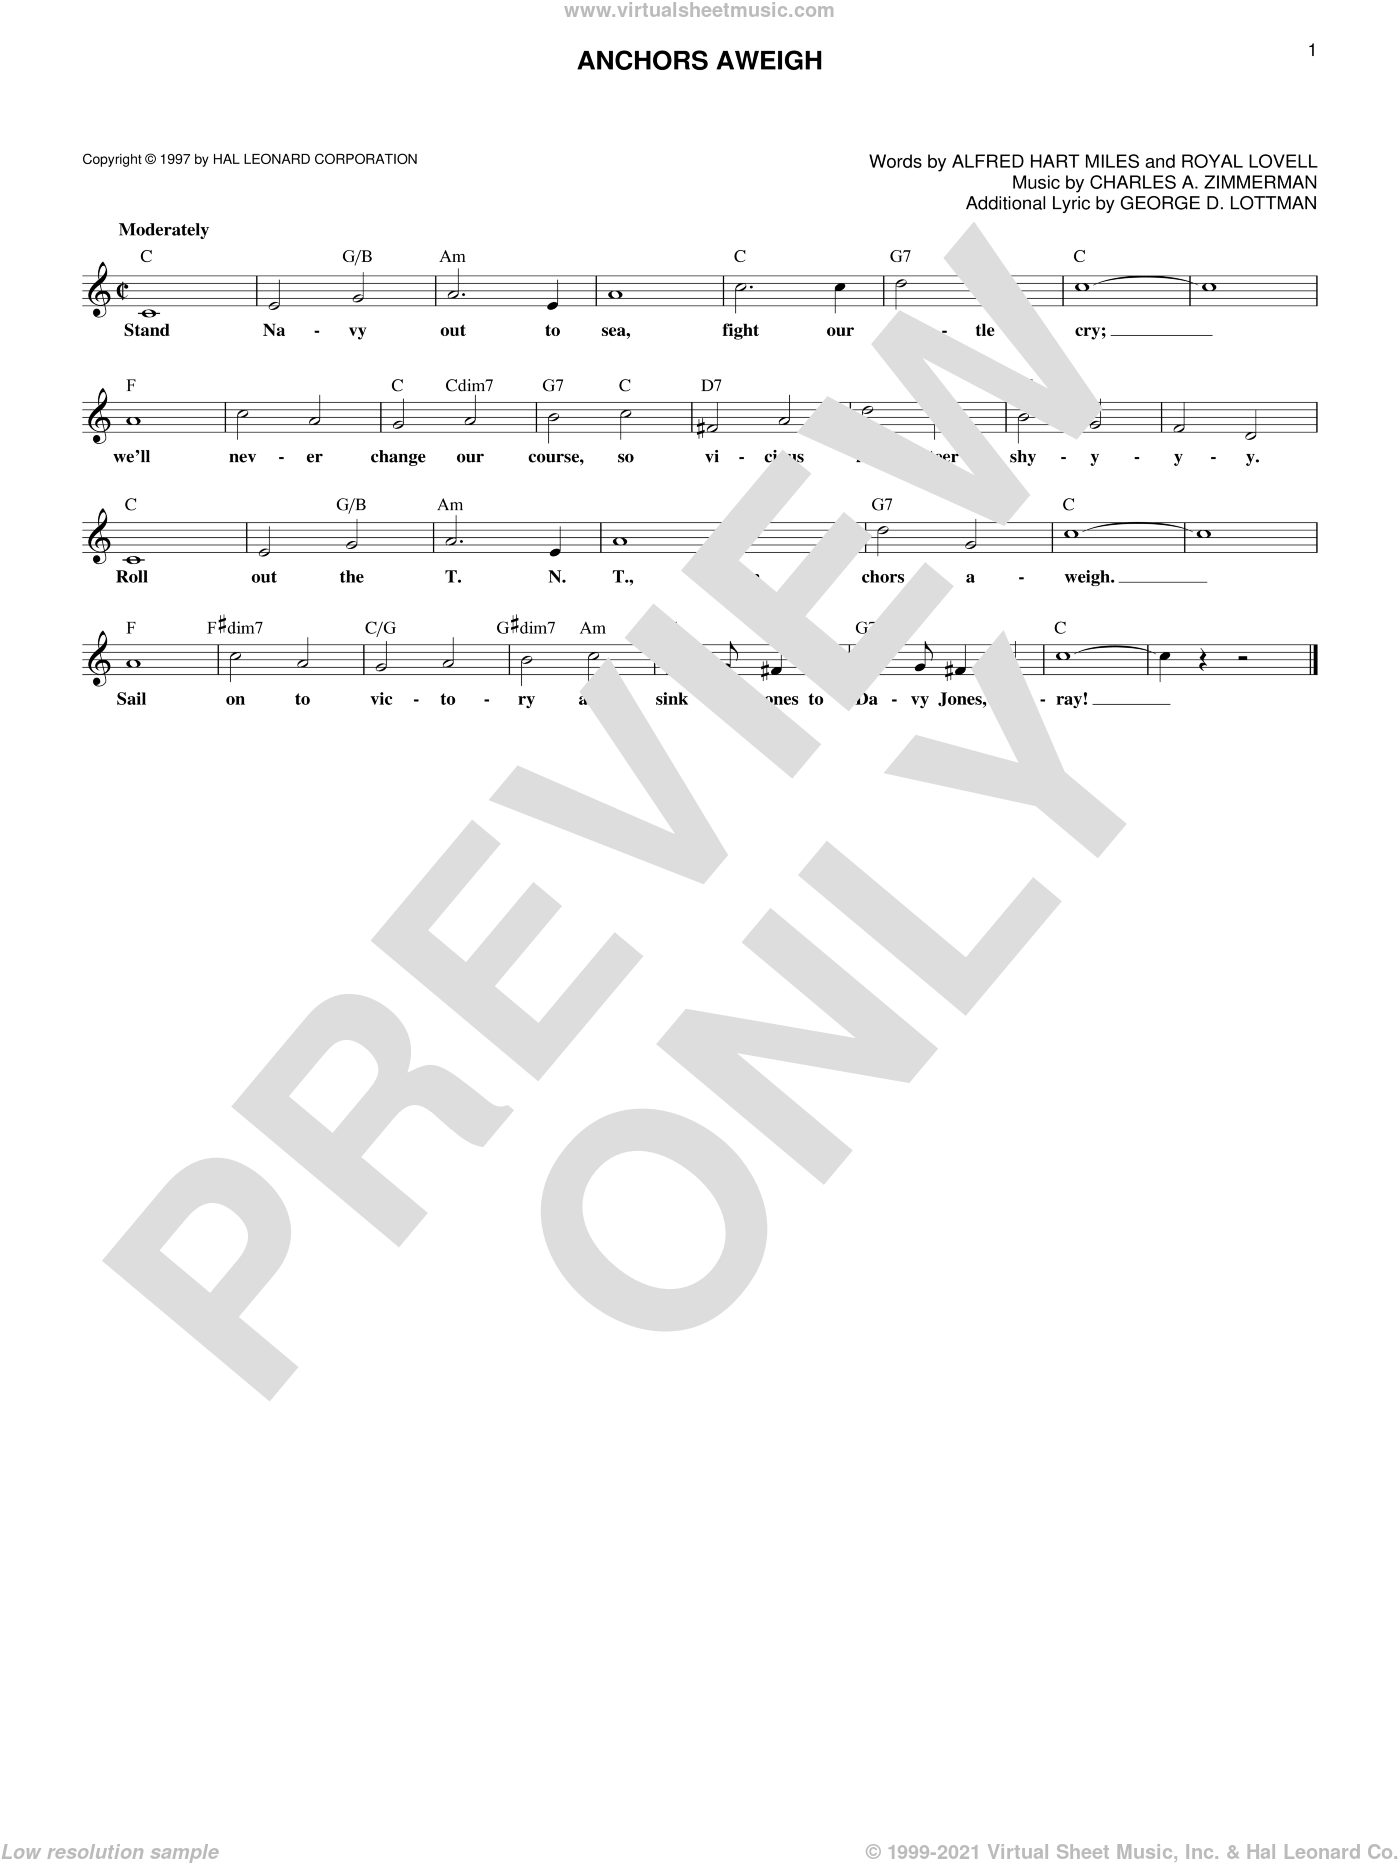 Anchors Aweigh sheet music for voice and other instruments (fake book) by Royal Lovell, Charles A. Zimmerman and George D. Lottman. Score Image Preview.